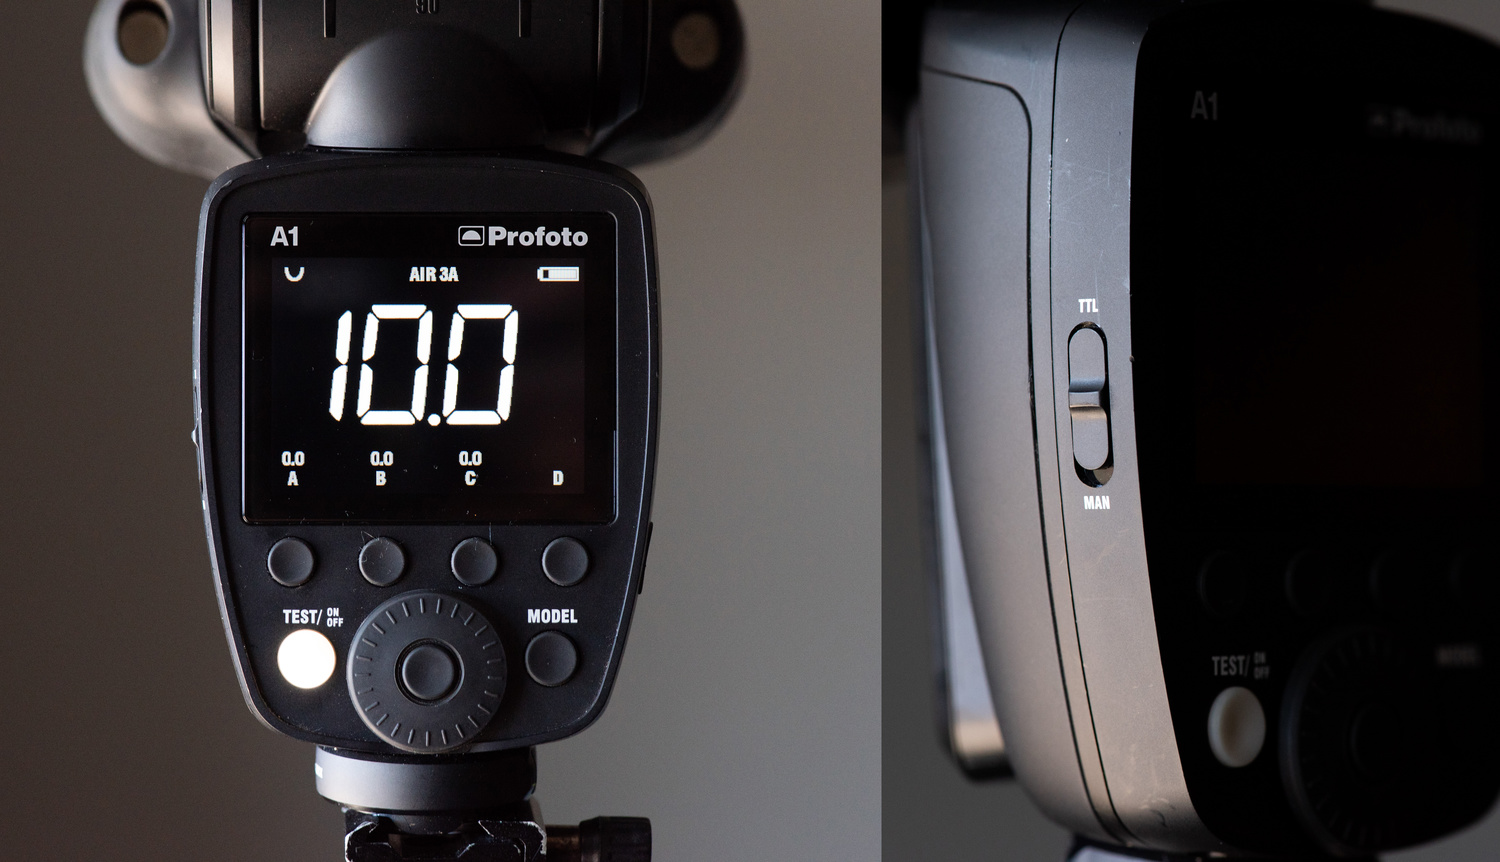 Fstoppers Reviews the Profoto A1 Hot Shoe Flash: Is It